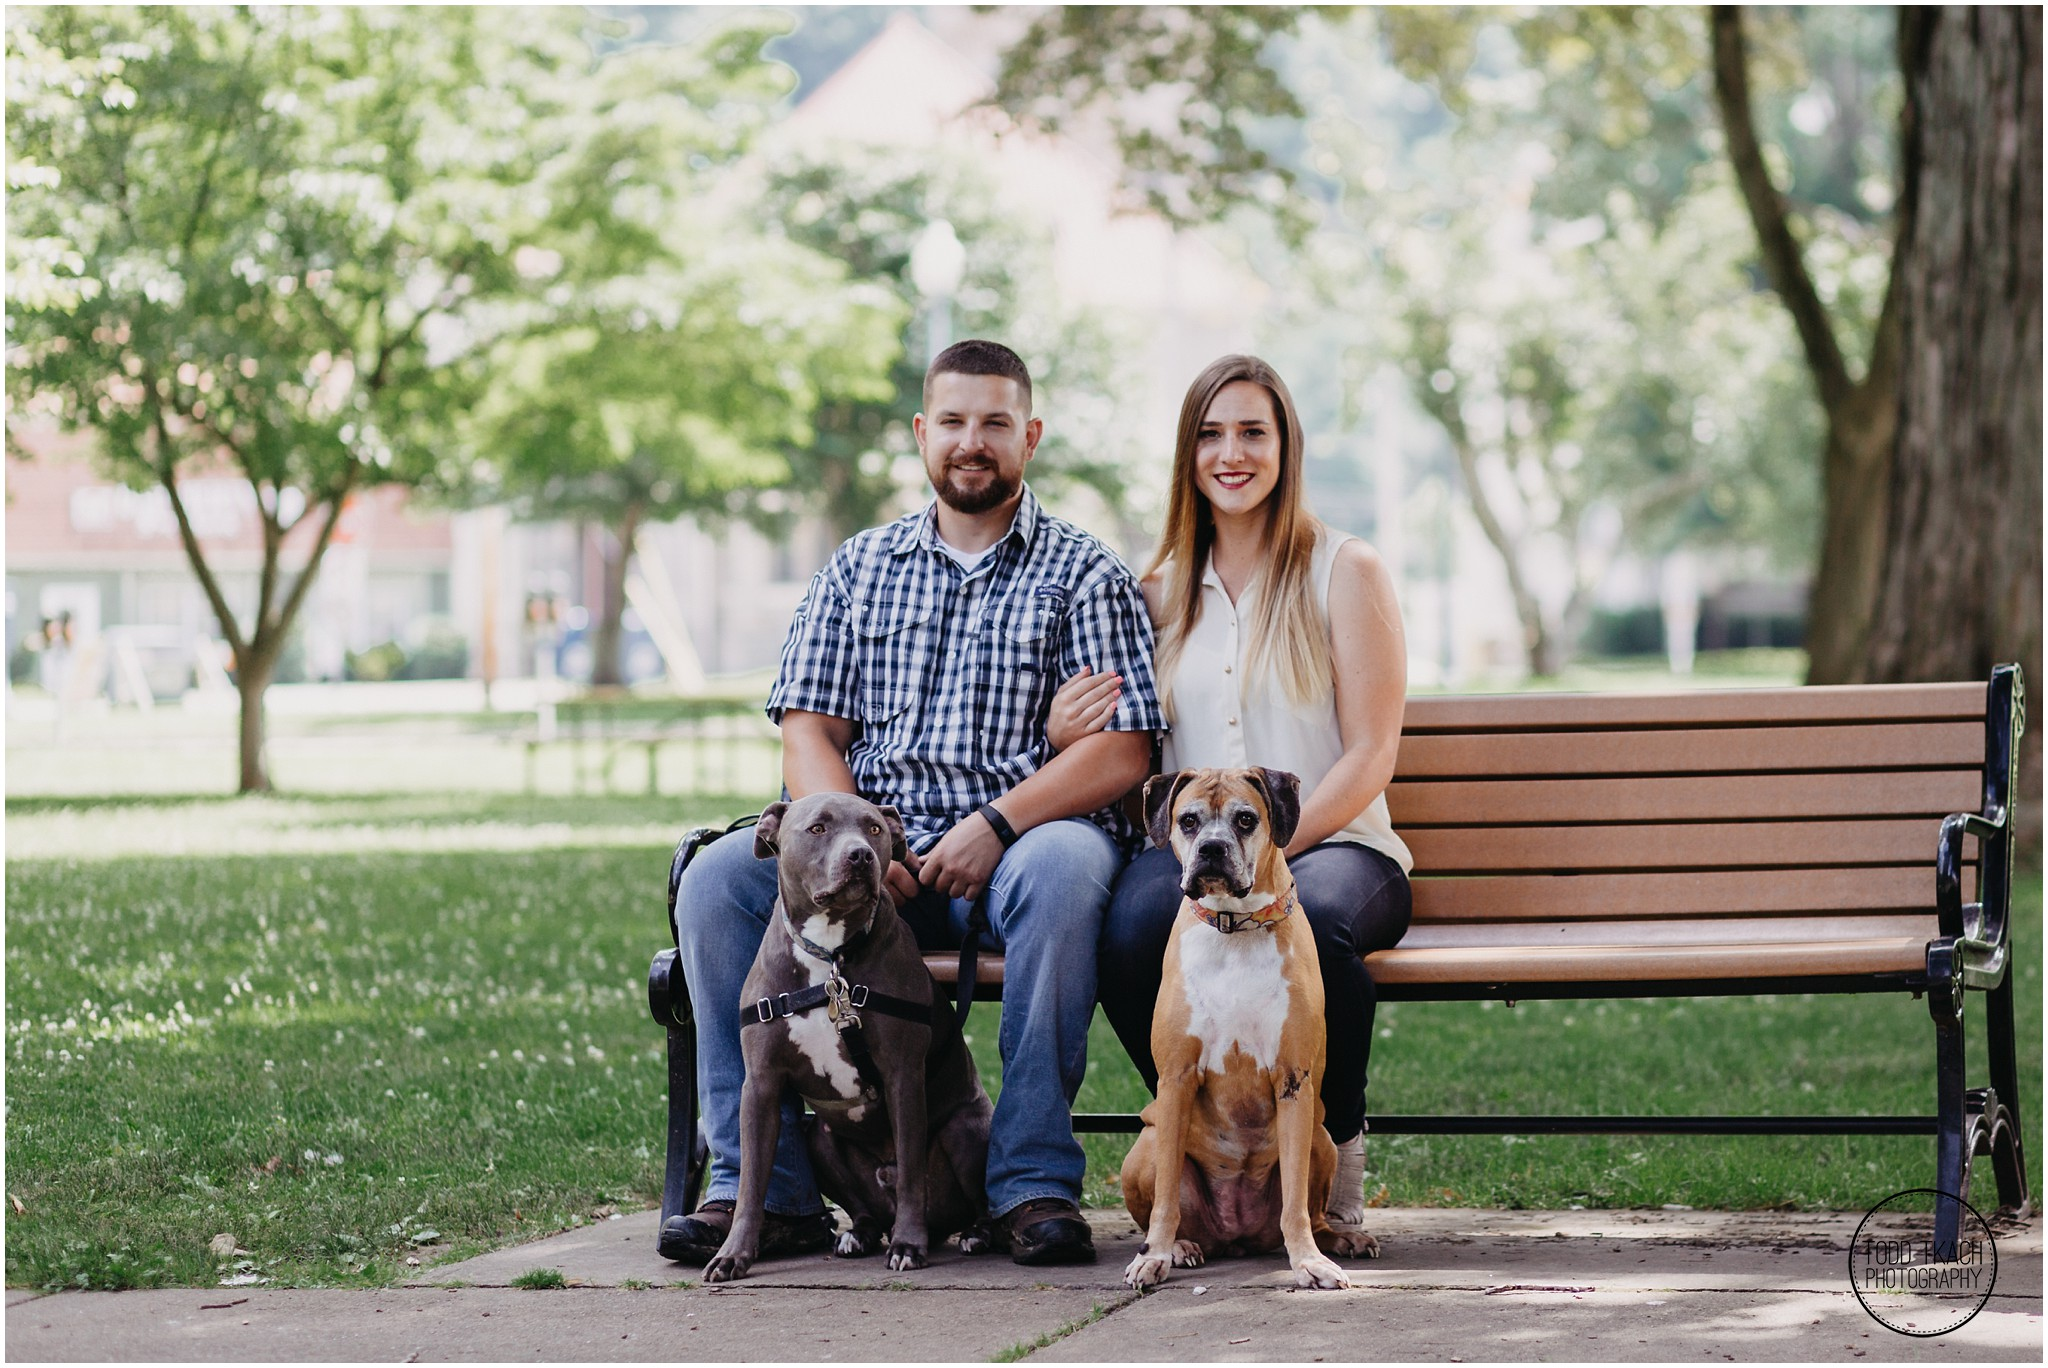 Kim & Brandon Engagement - Family Bench Portrait